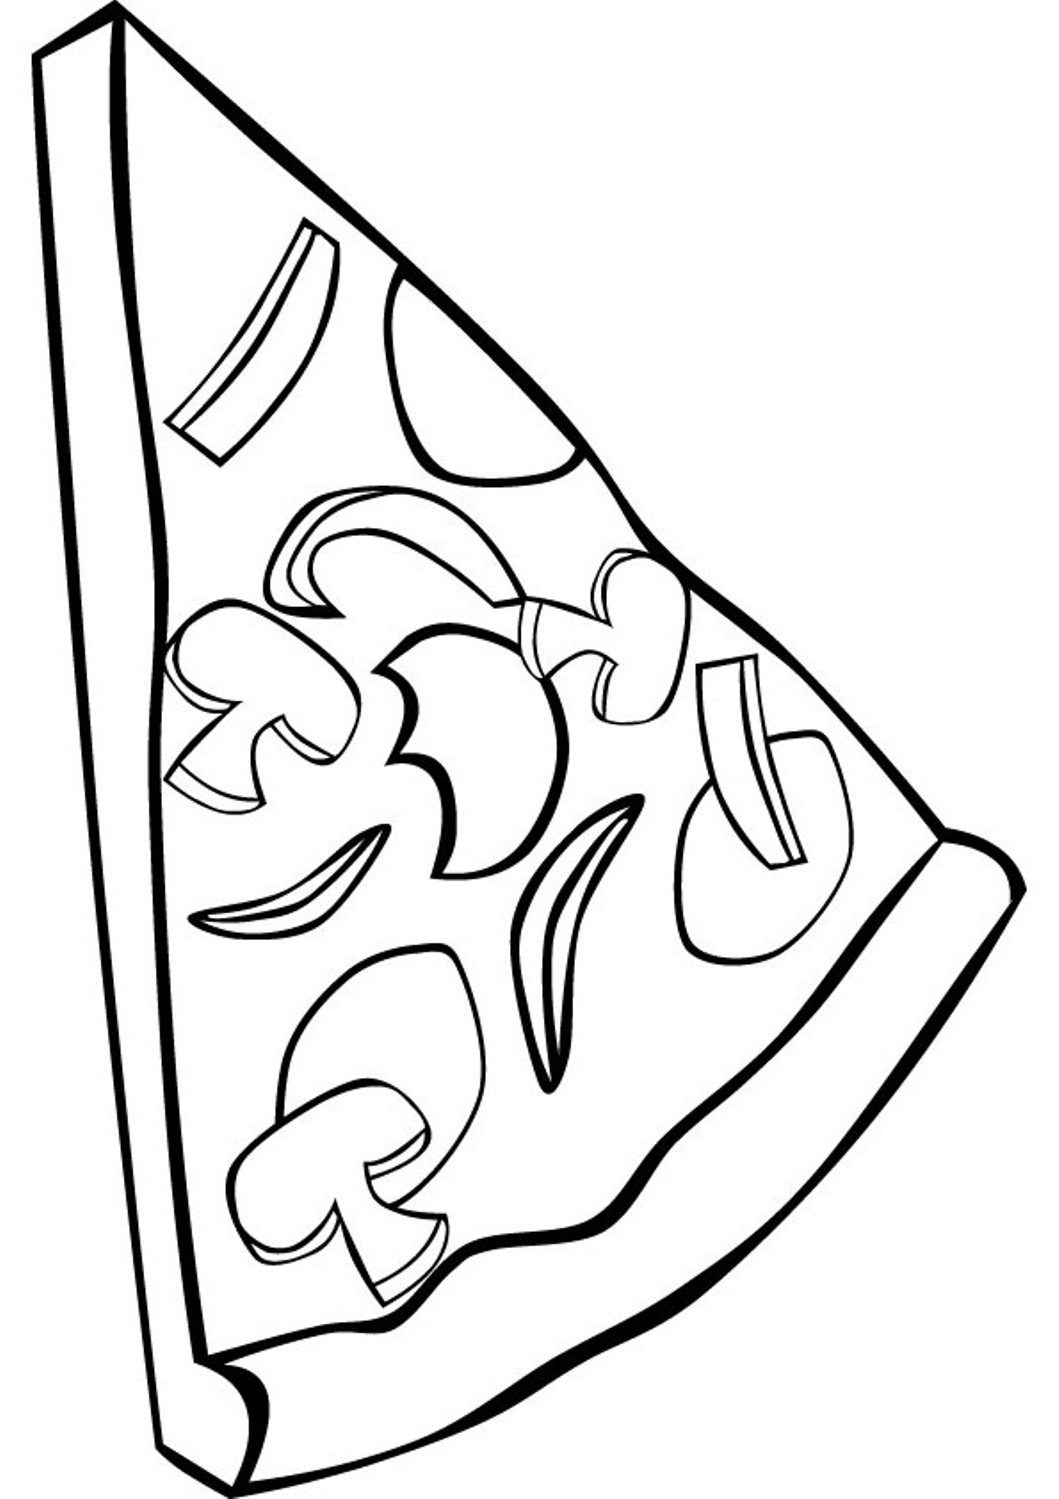 1059x1499 Coloring Pages Food Pizza Foods Coloring Pages